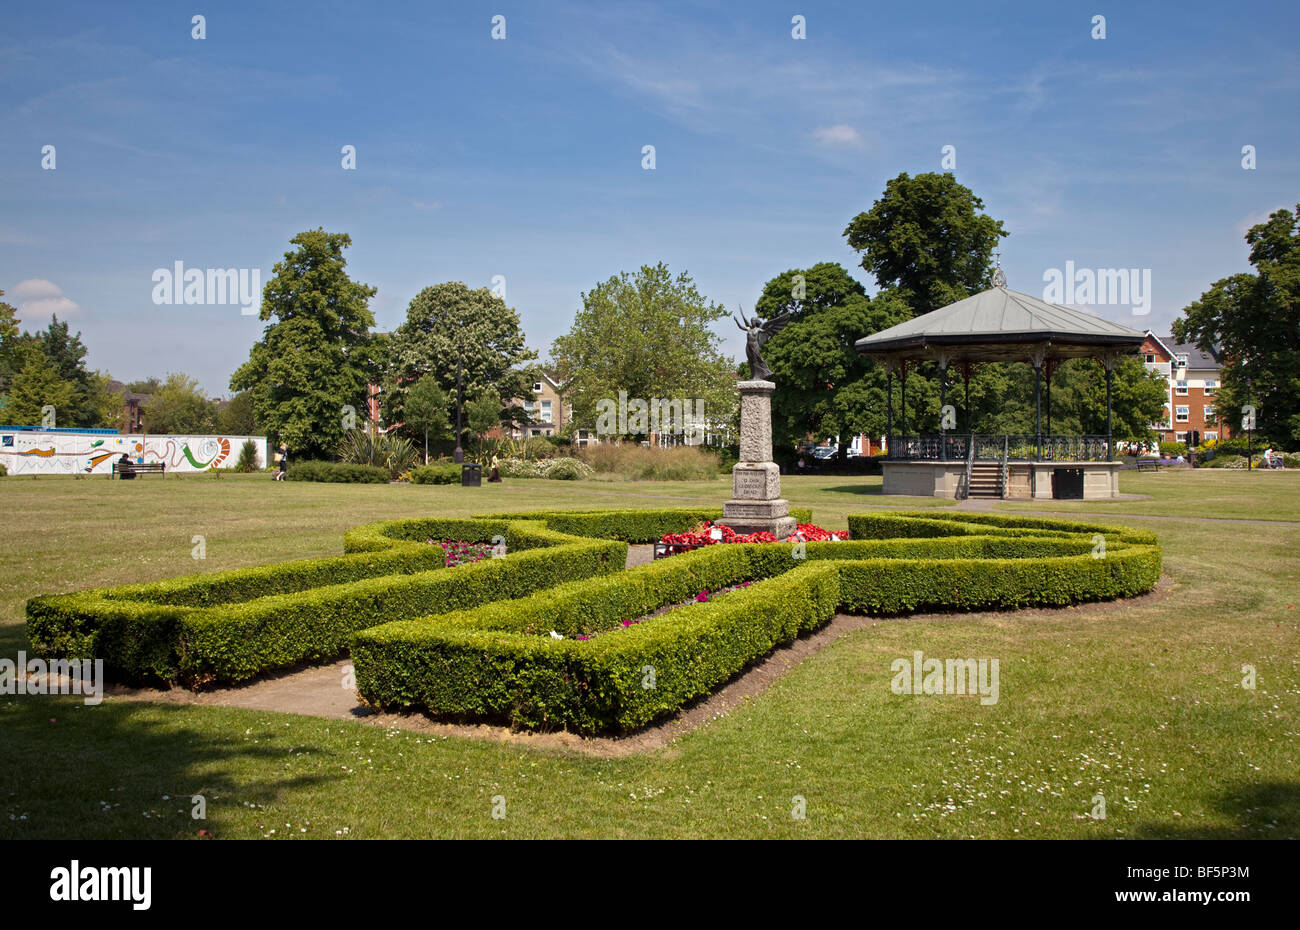 War Memorial and Bandstand in the Park, Eastleigh, Hampshire, England - Stock Image